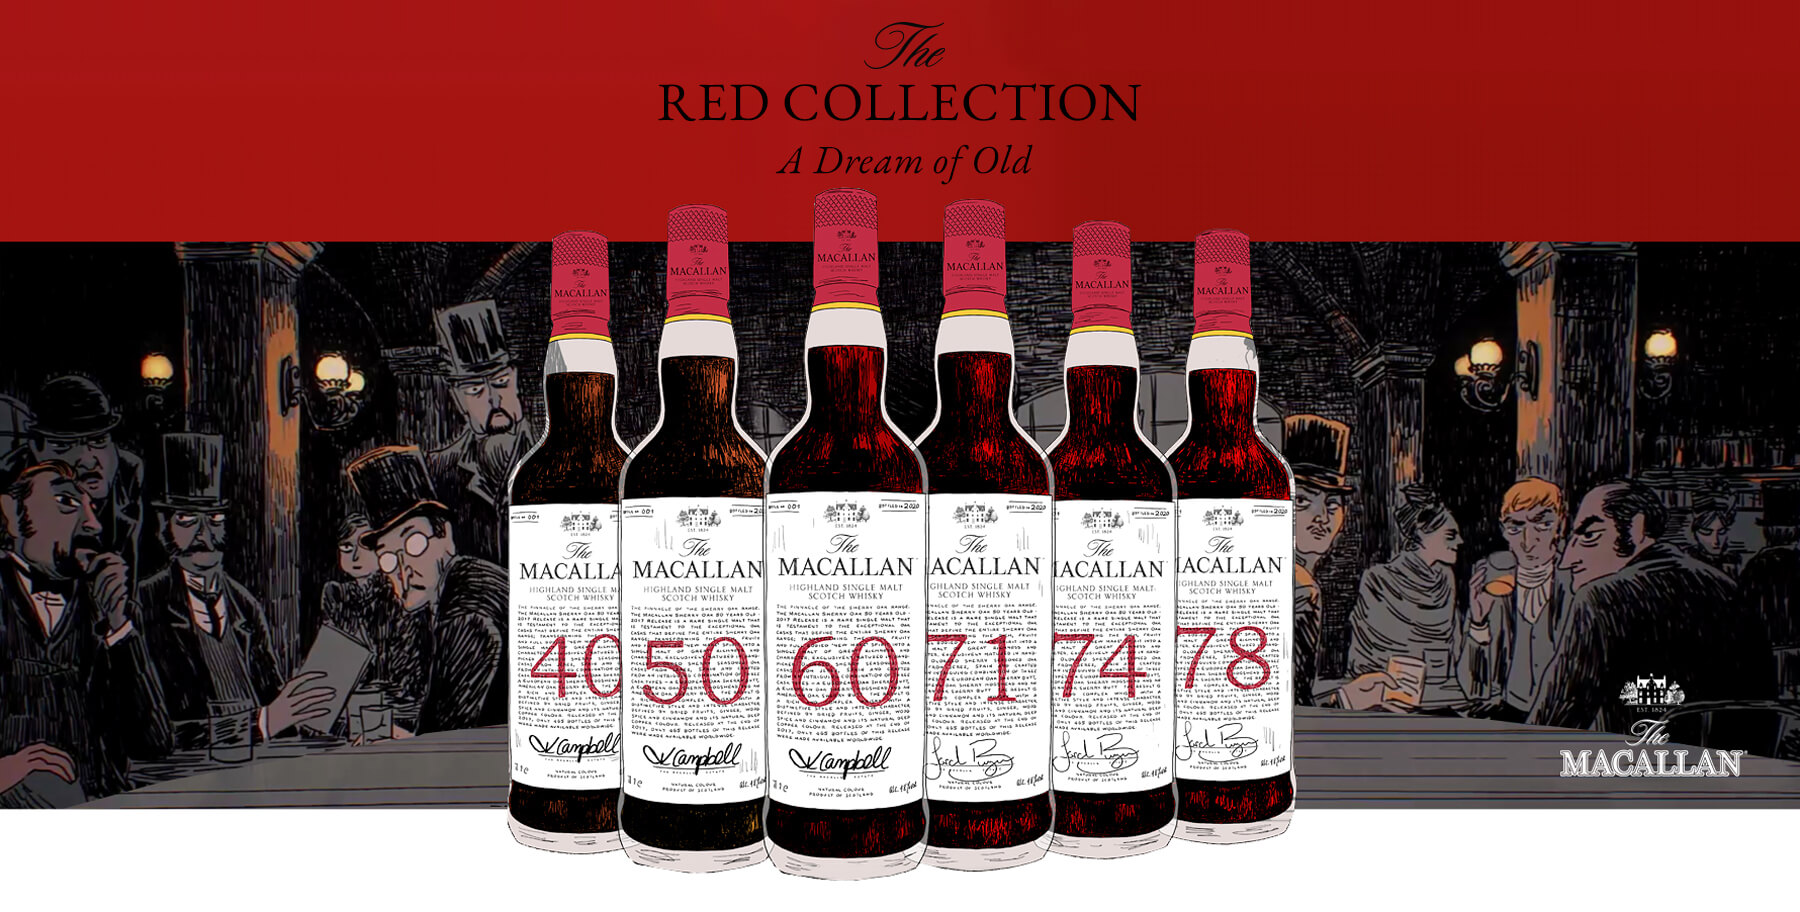 Macallan Red Collection